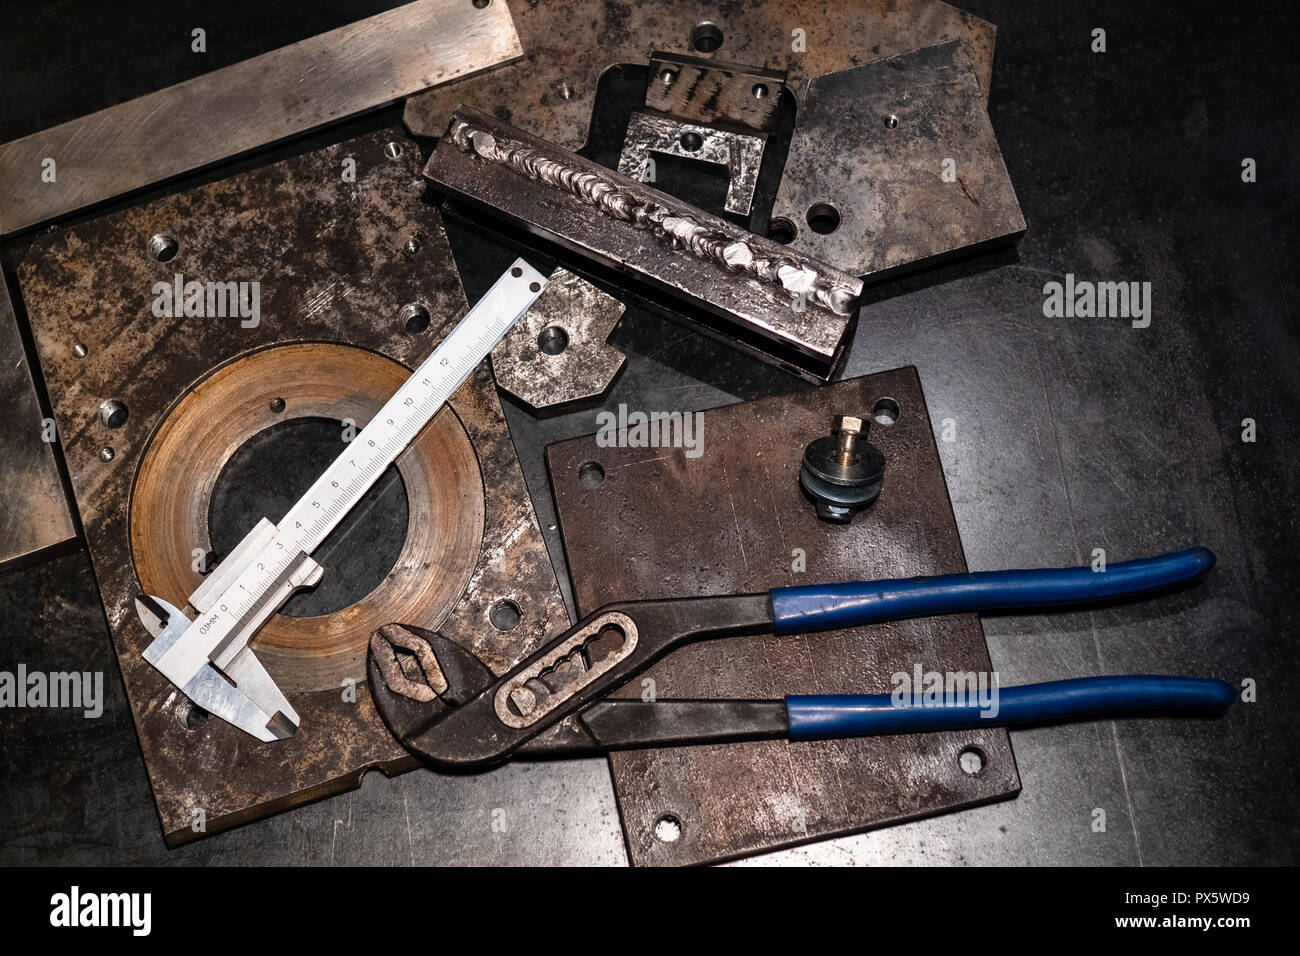 Metalworking still life - top view of calipers and adjustable pliers on metal workbench in turnery workshop in cold blue light - Stock Image